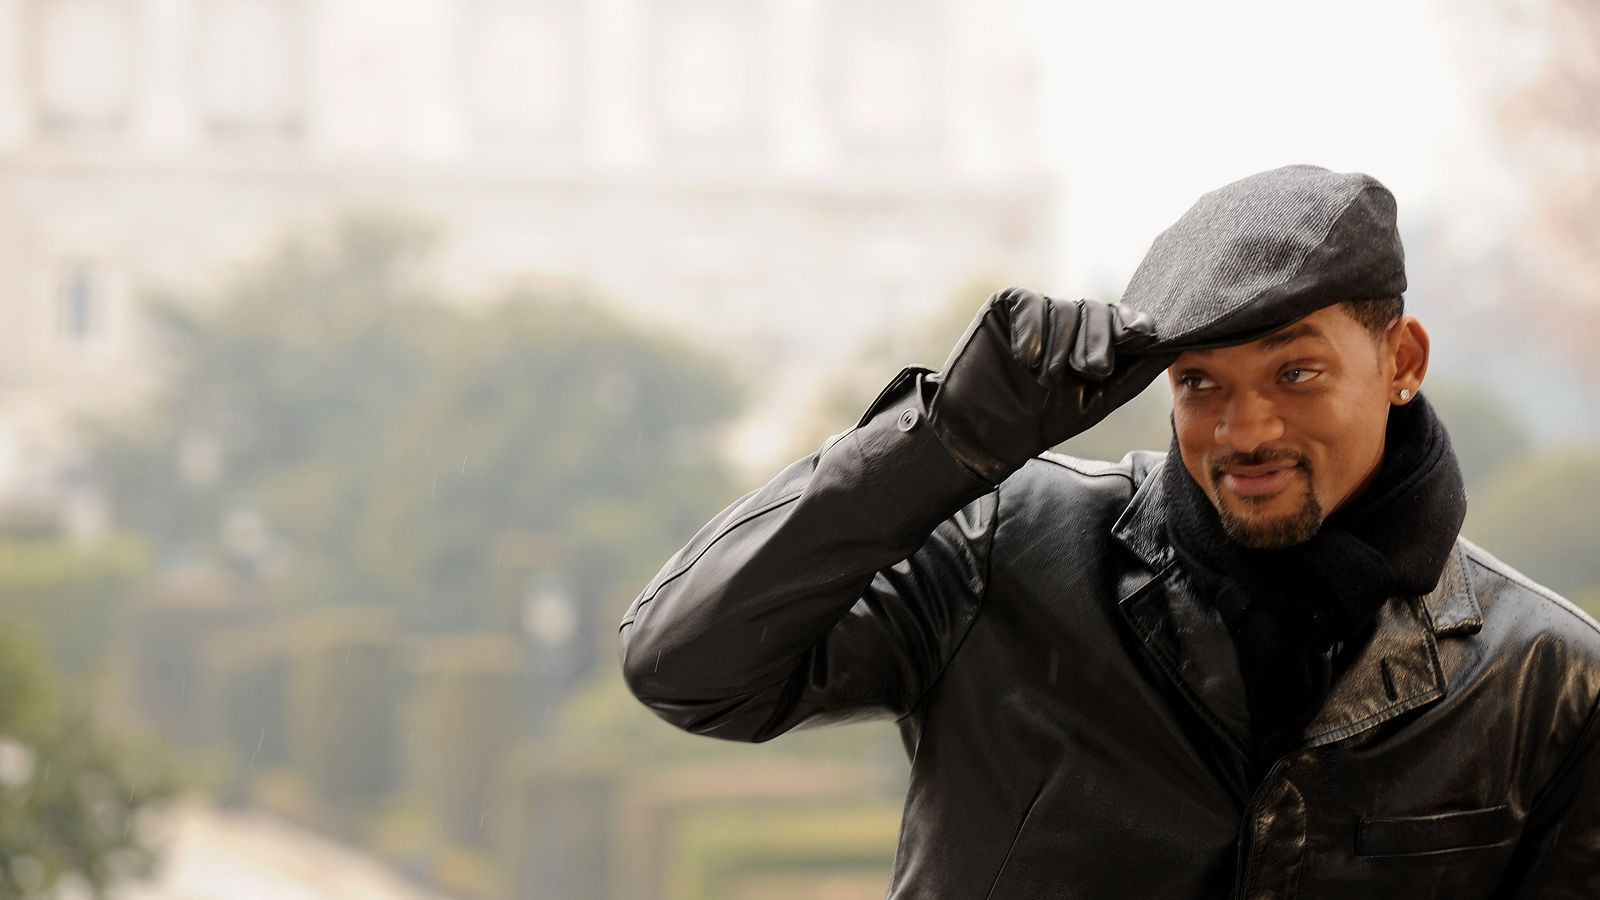 Will Smith's tech references have dated terribly: a report